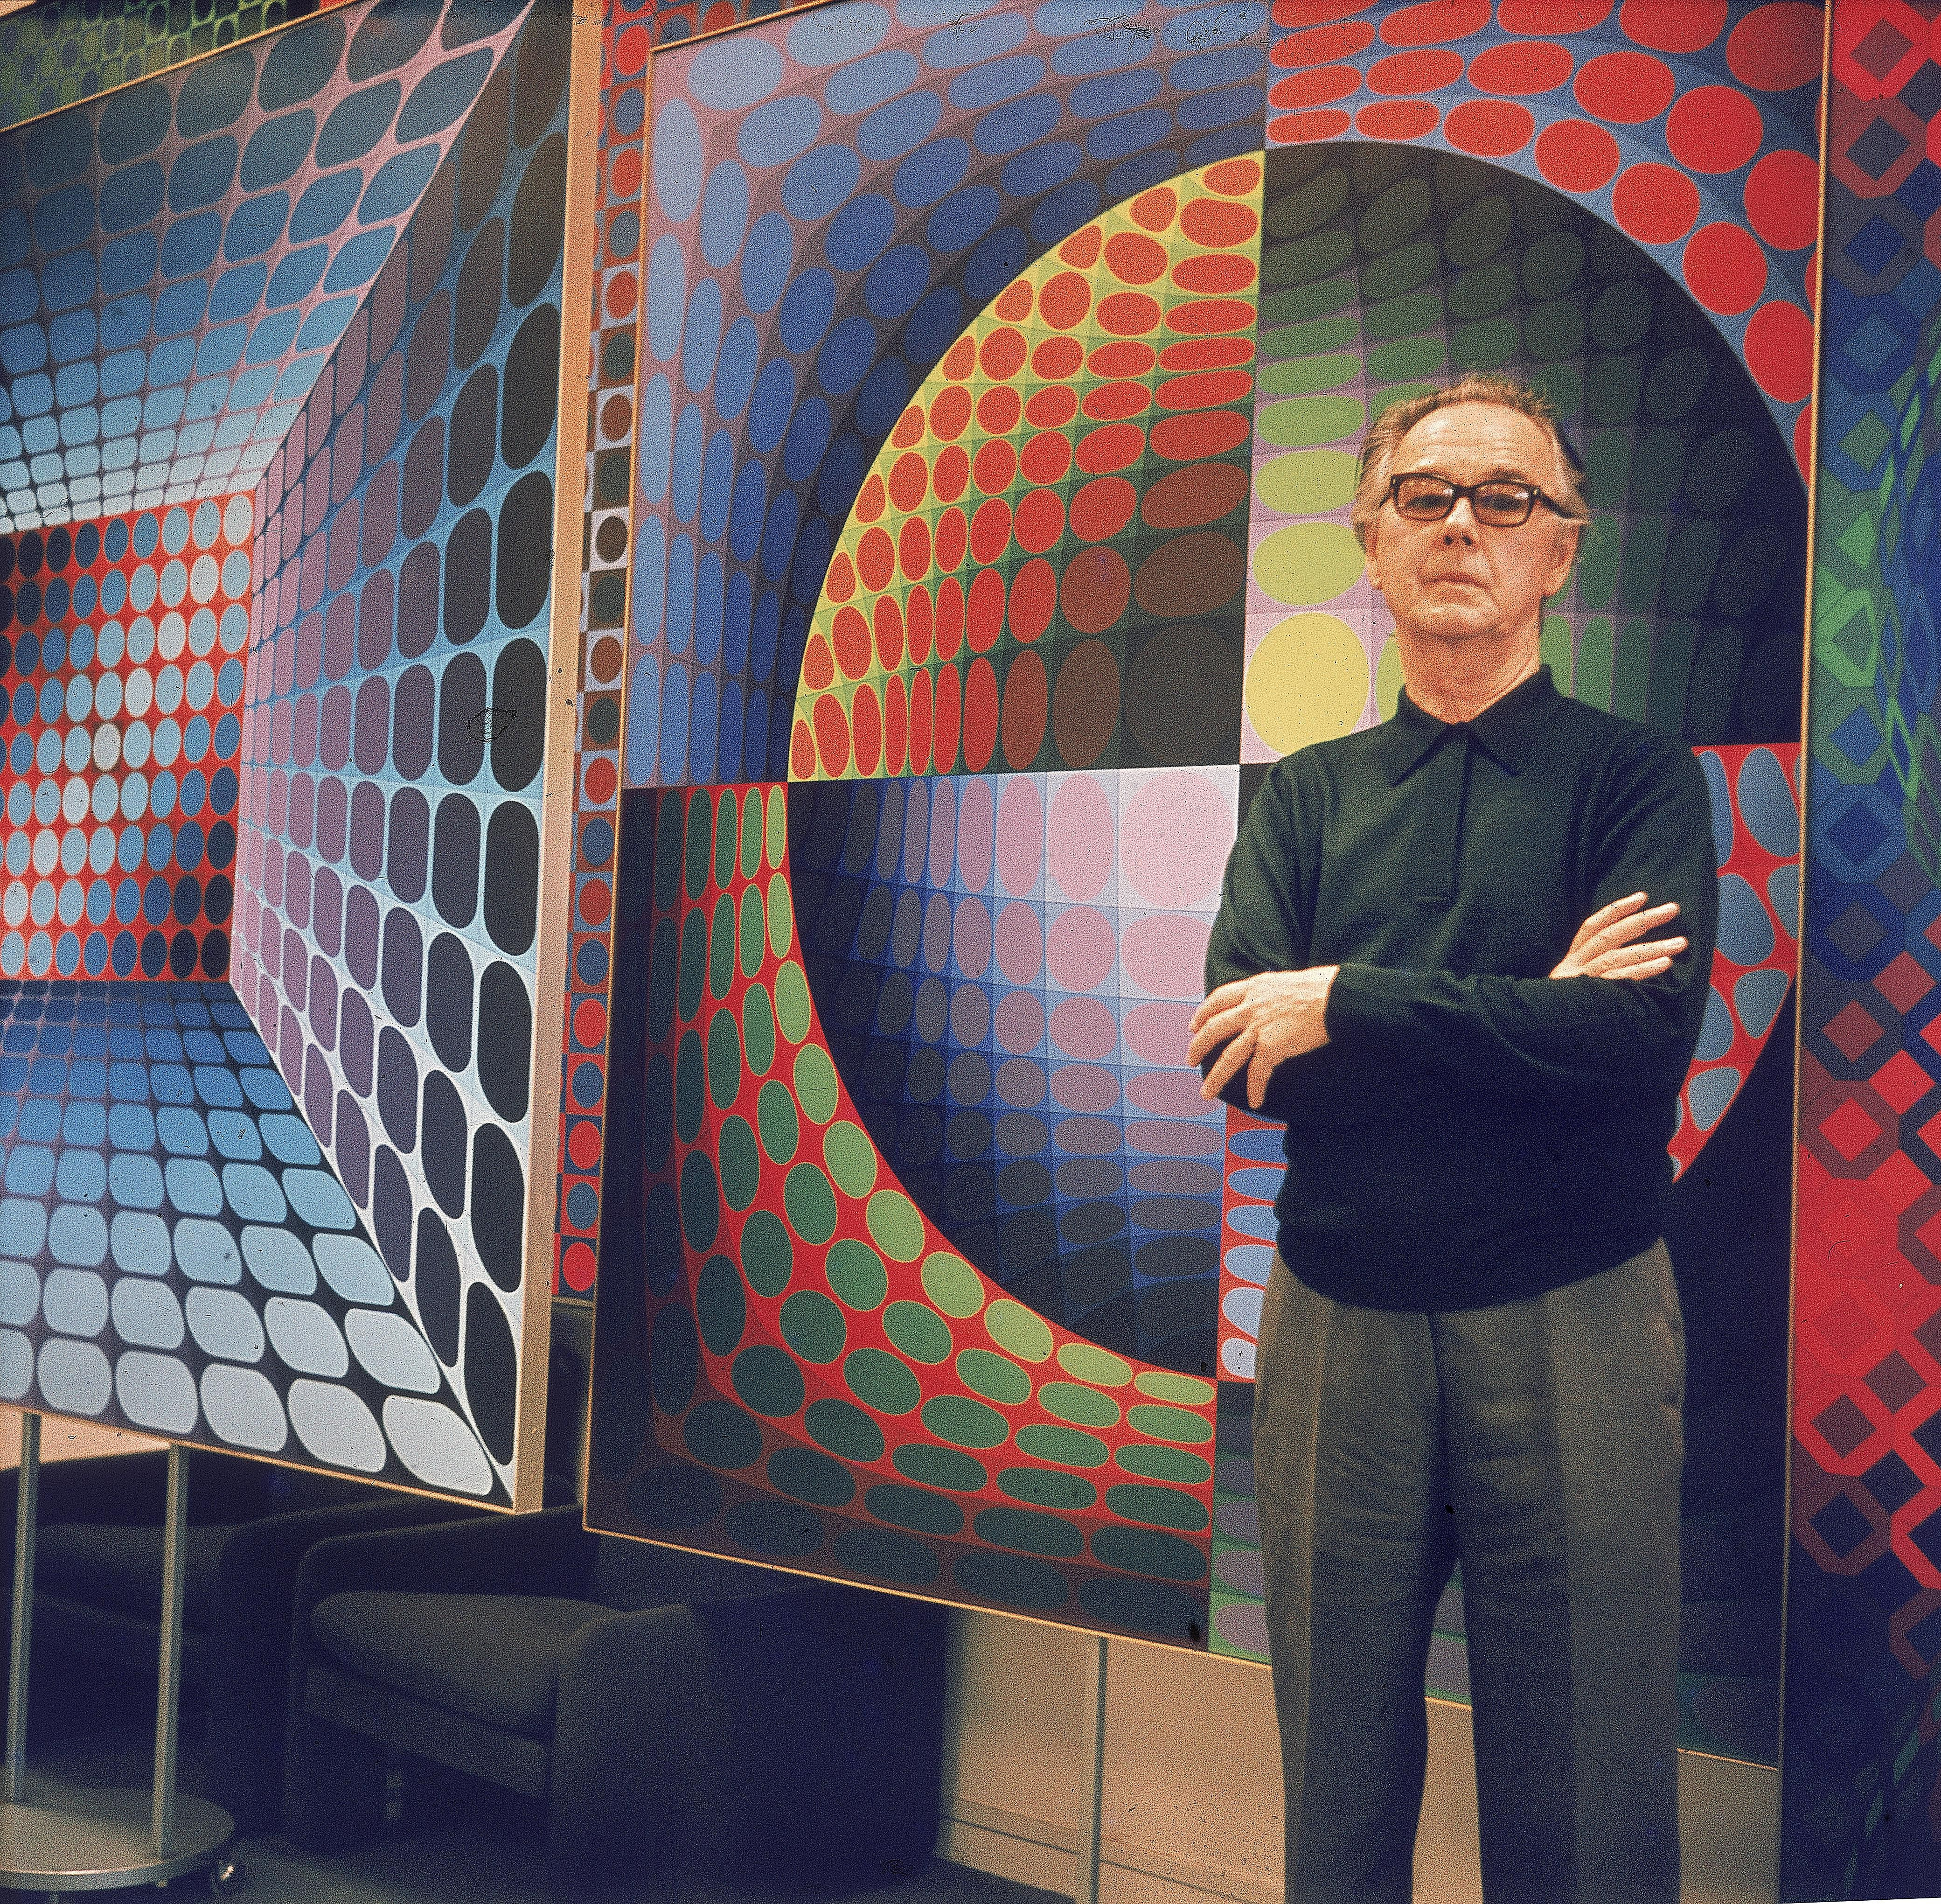 Victor Vasarely, Leader of the Op Art Movement